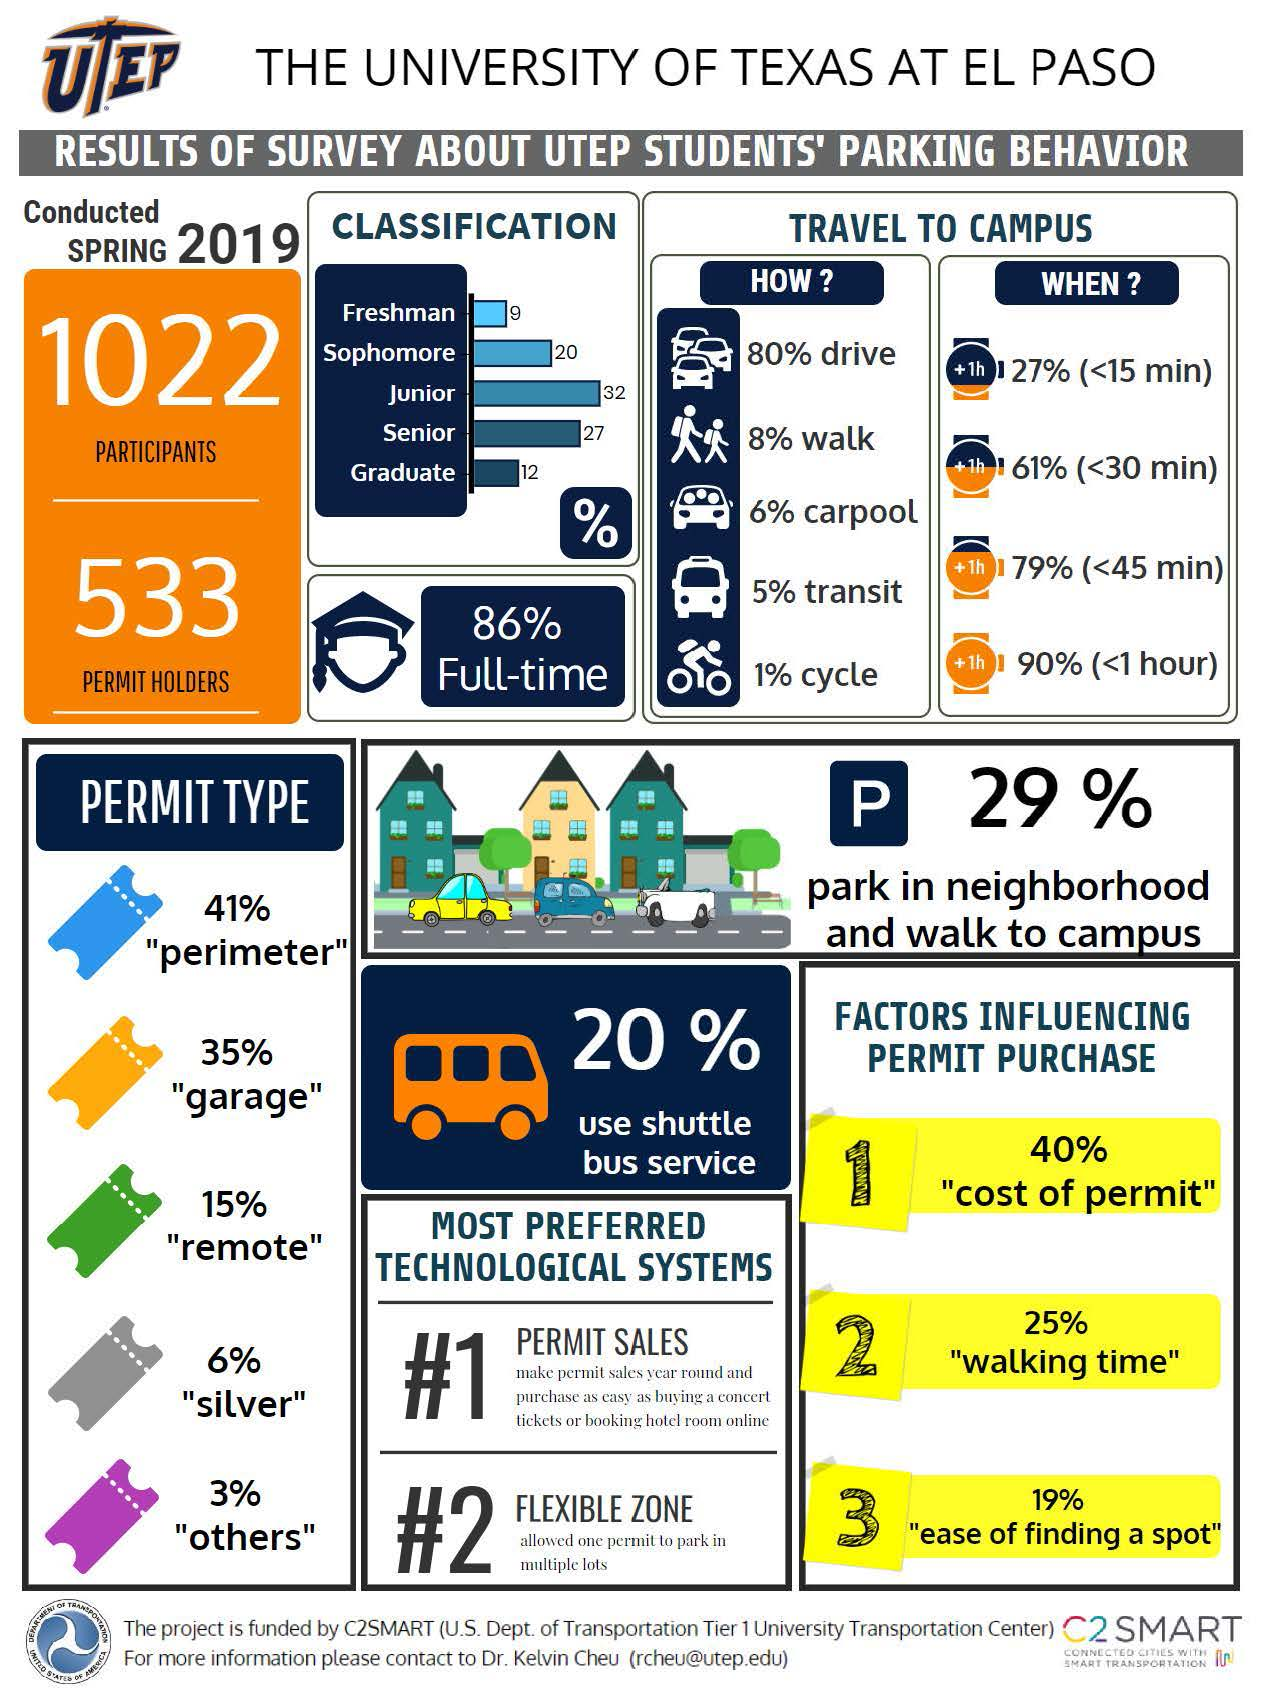 Results of Survey about UTEP Students' Parking Behavior